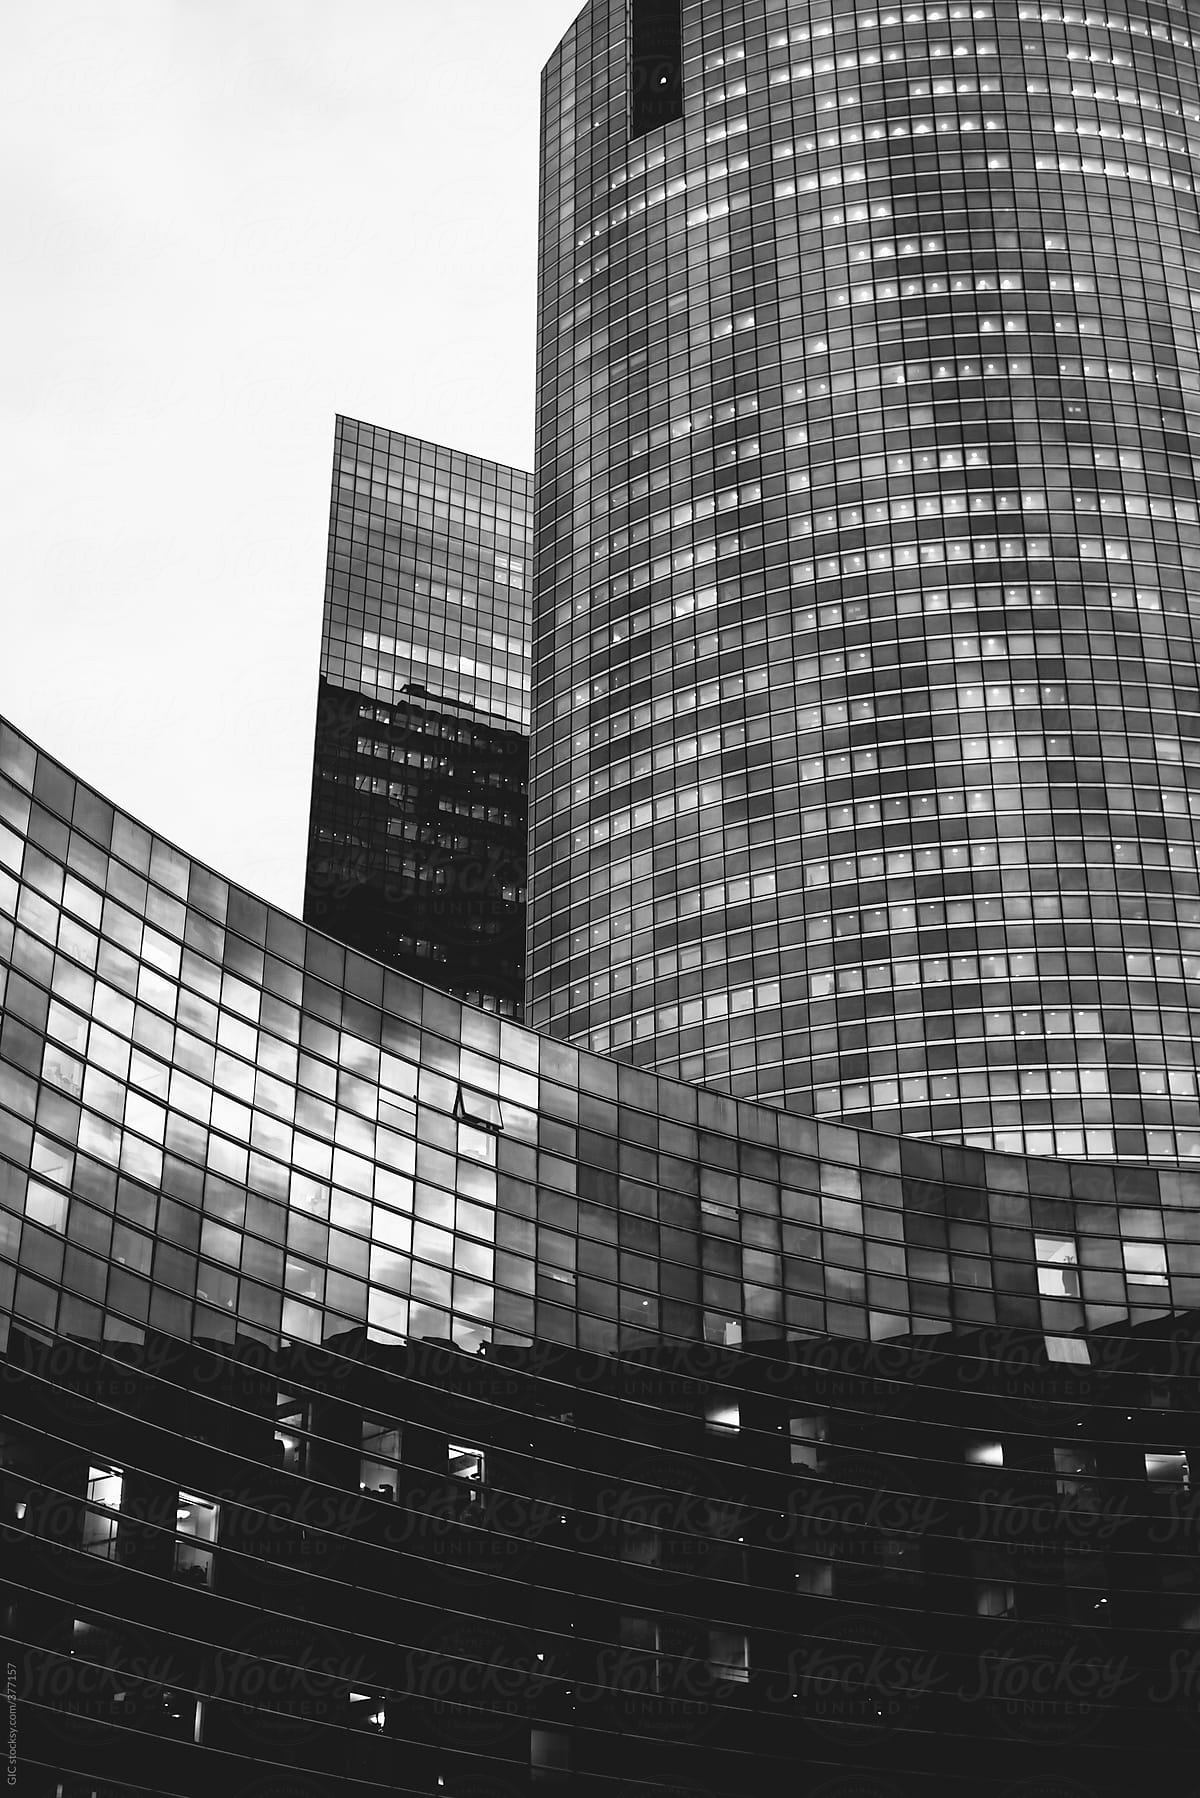 Modern building in Black and White by Simone Wave - Skyscraper, Architecture  - Stocksy United